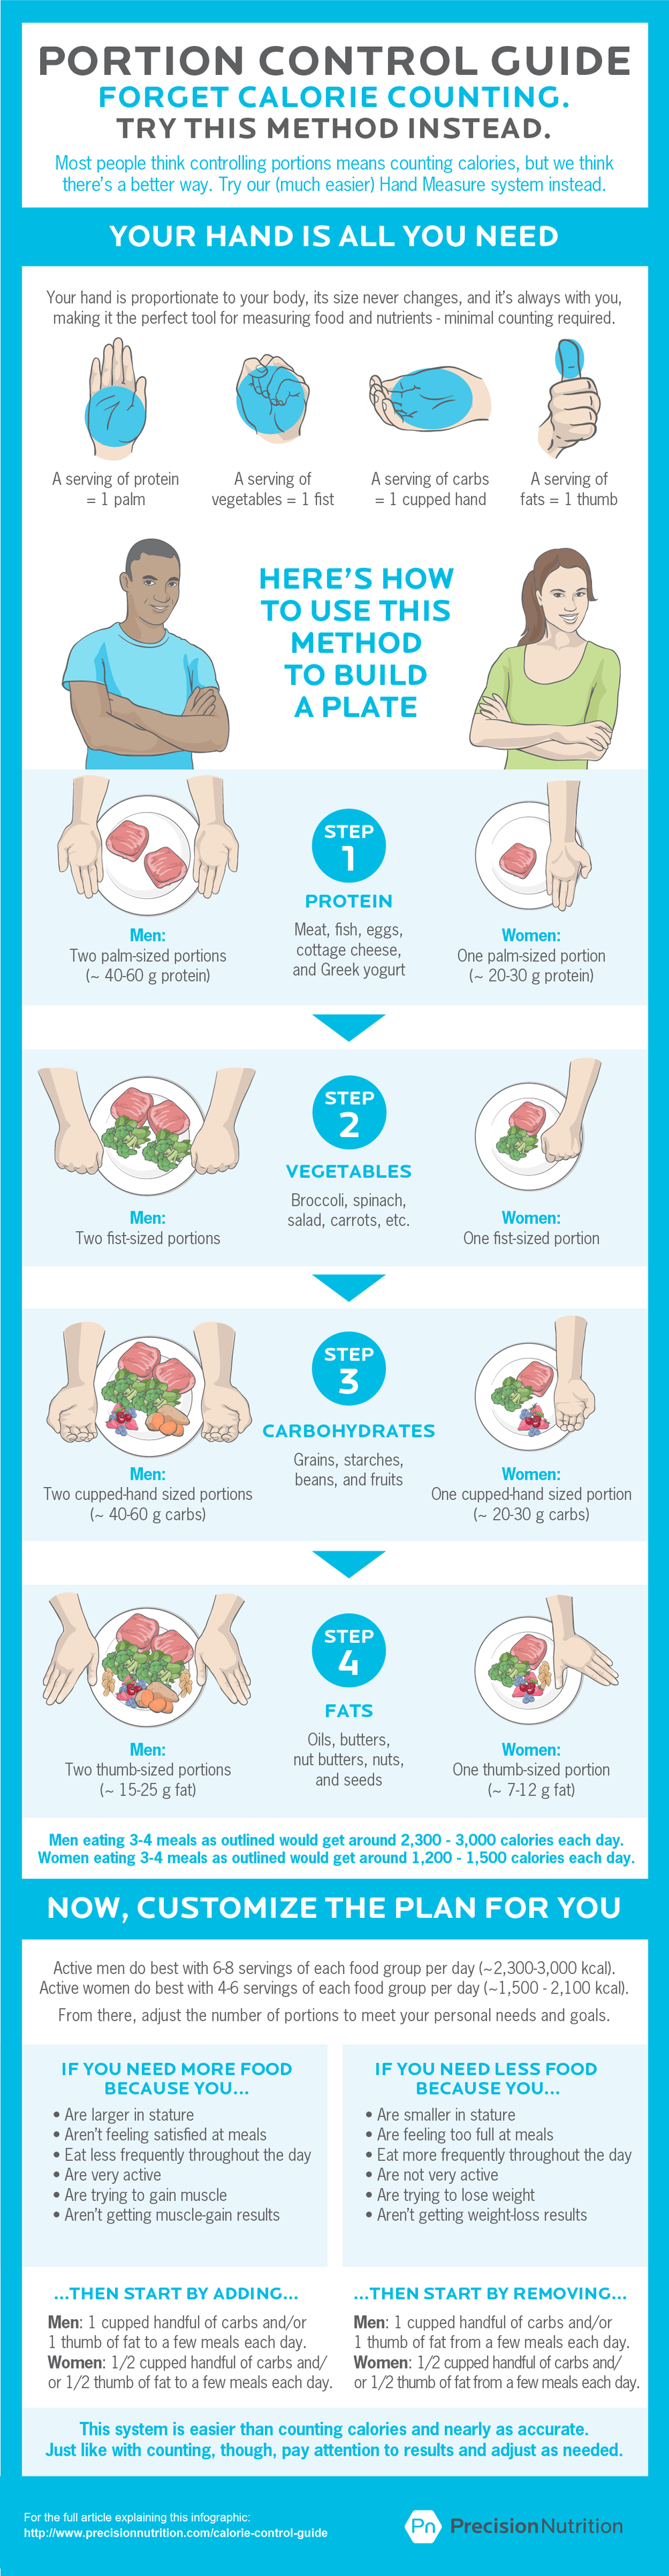 https://www.precisionnutrition.com/calorie-control-guide-infographic